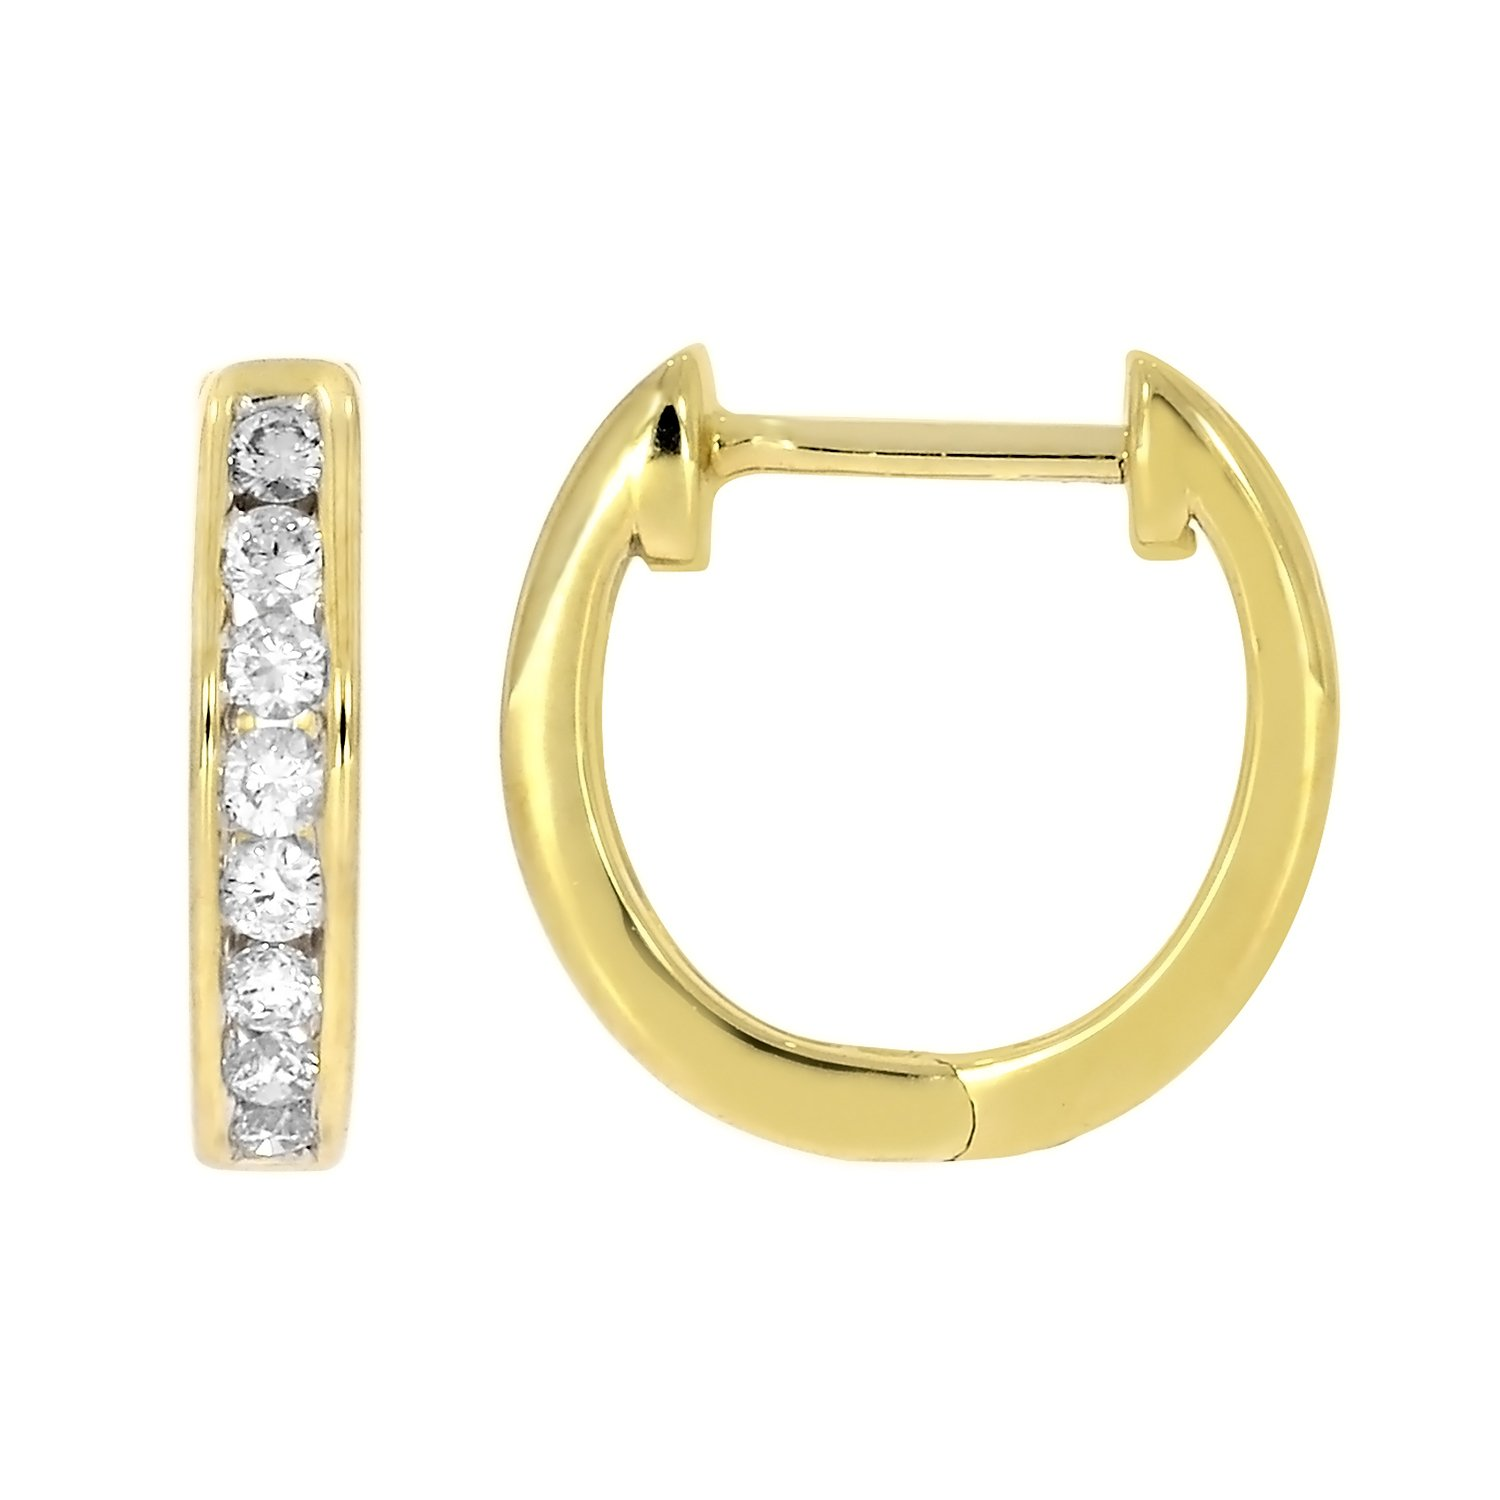 1/4 cttw 10k Solid Gold Round Cut White Diamond Ladies Dainty Hoop Earrings (yellow-gold) by eSparkle